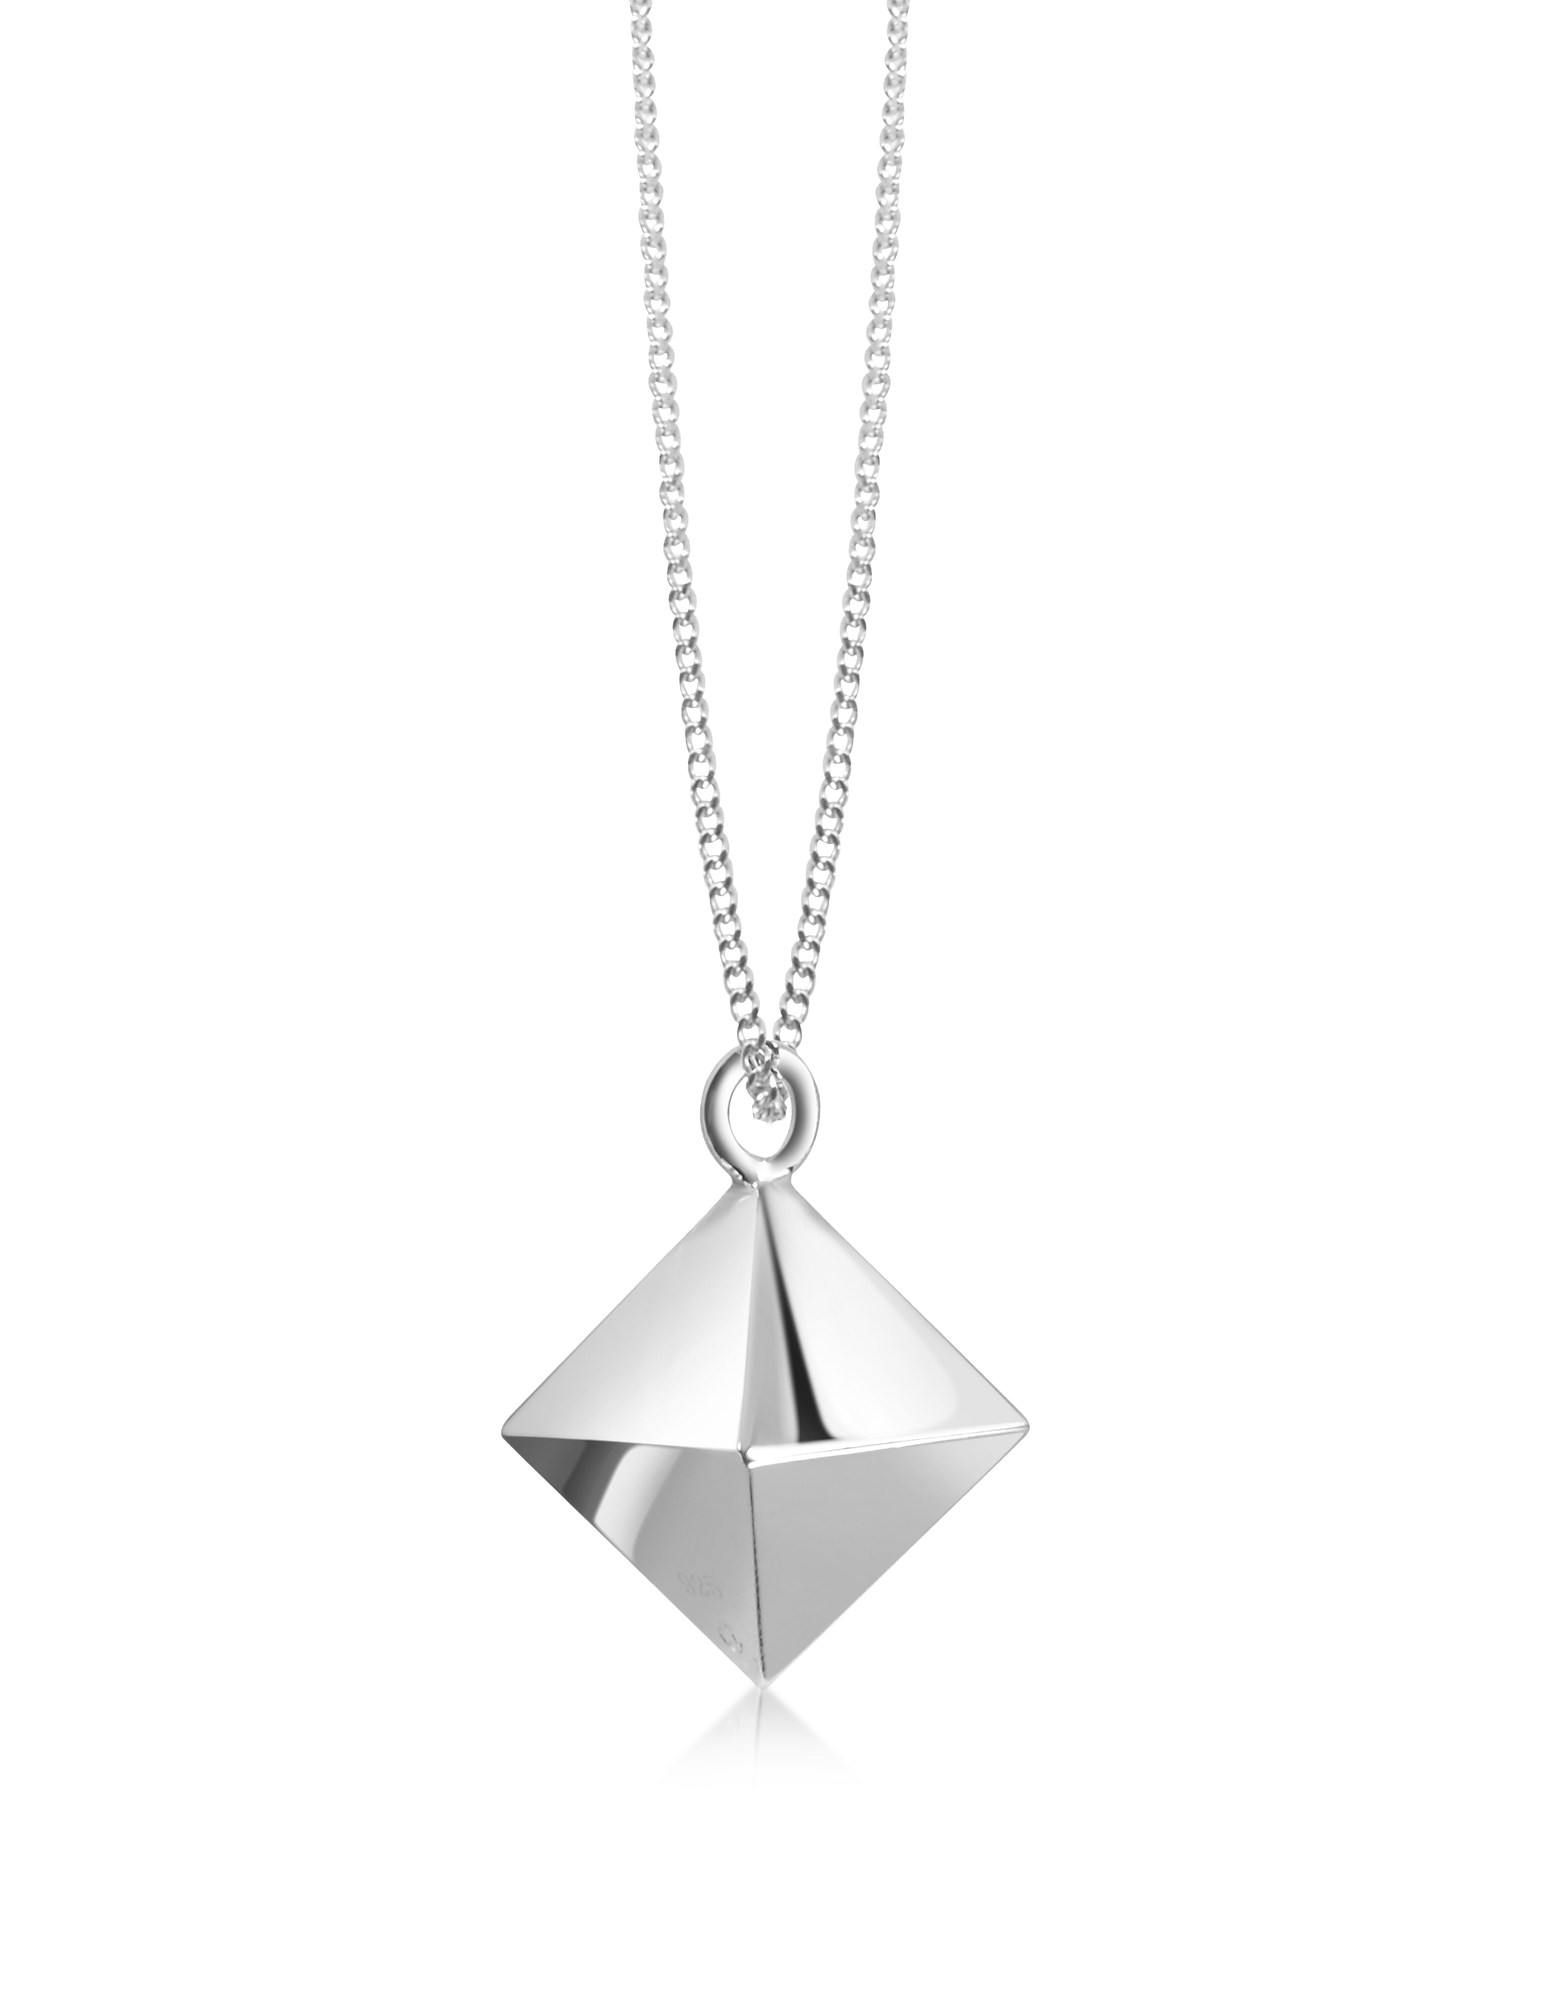 Origami Necklaces, Sterling Silver Decagem Pendant Long Necklace